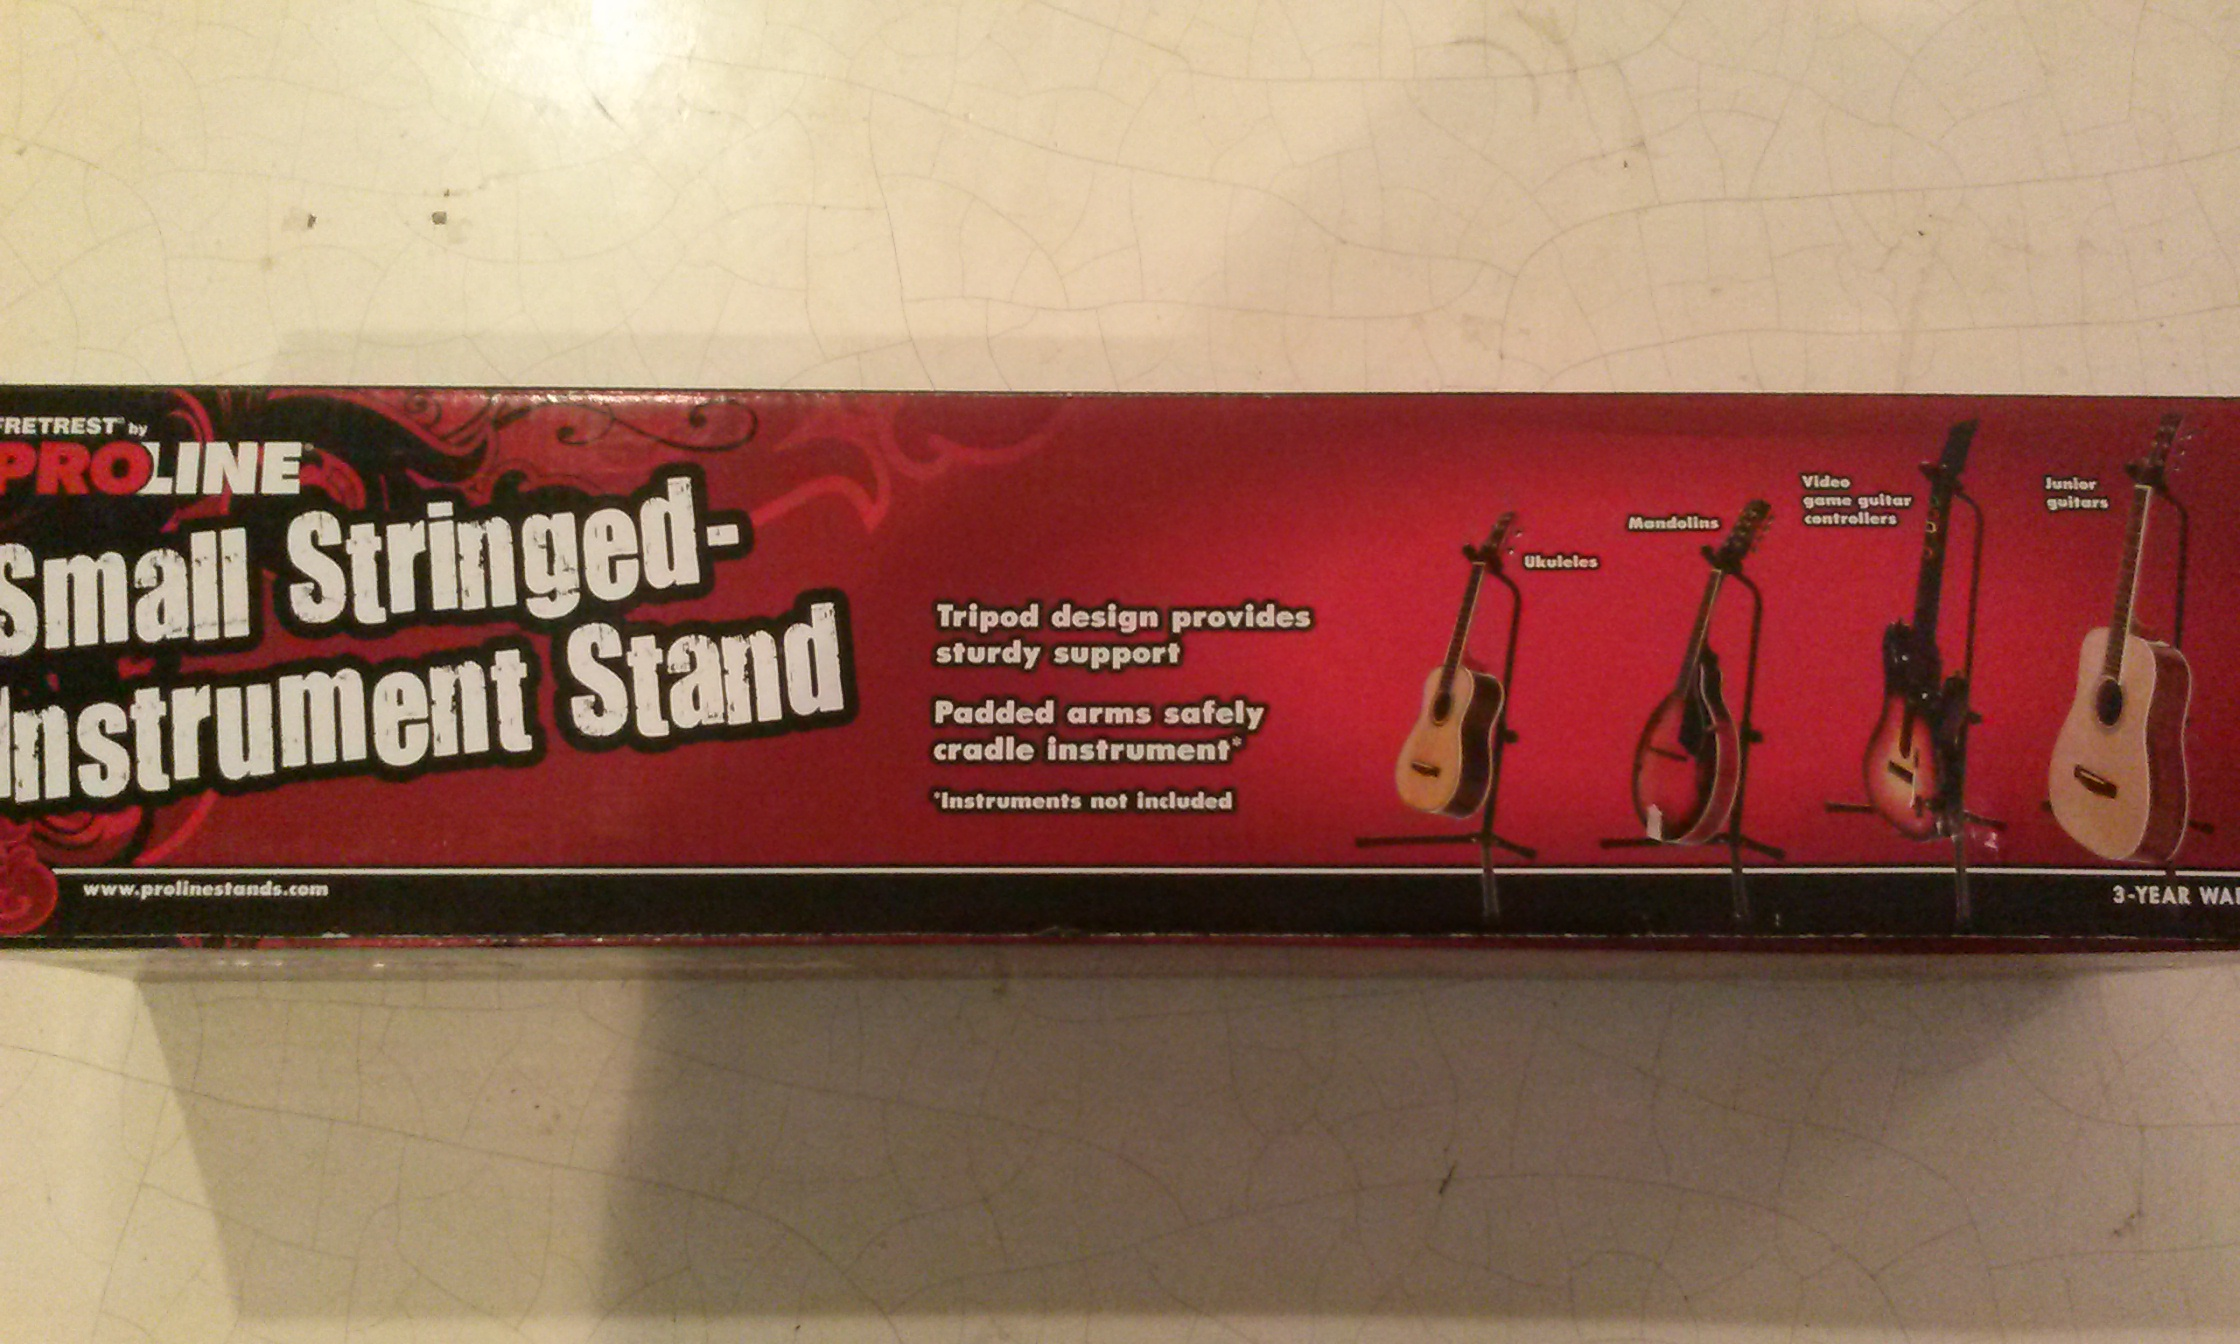 ProLine-Small Stringed Instrument Stand